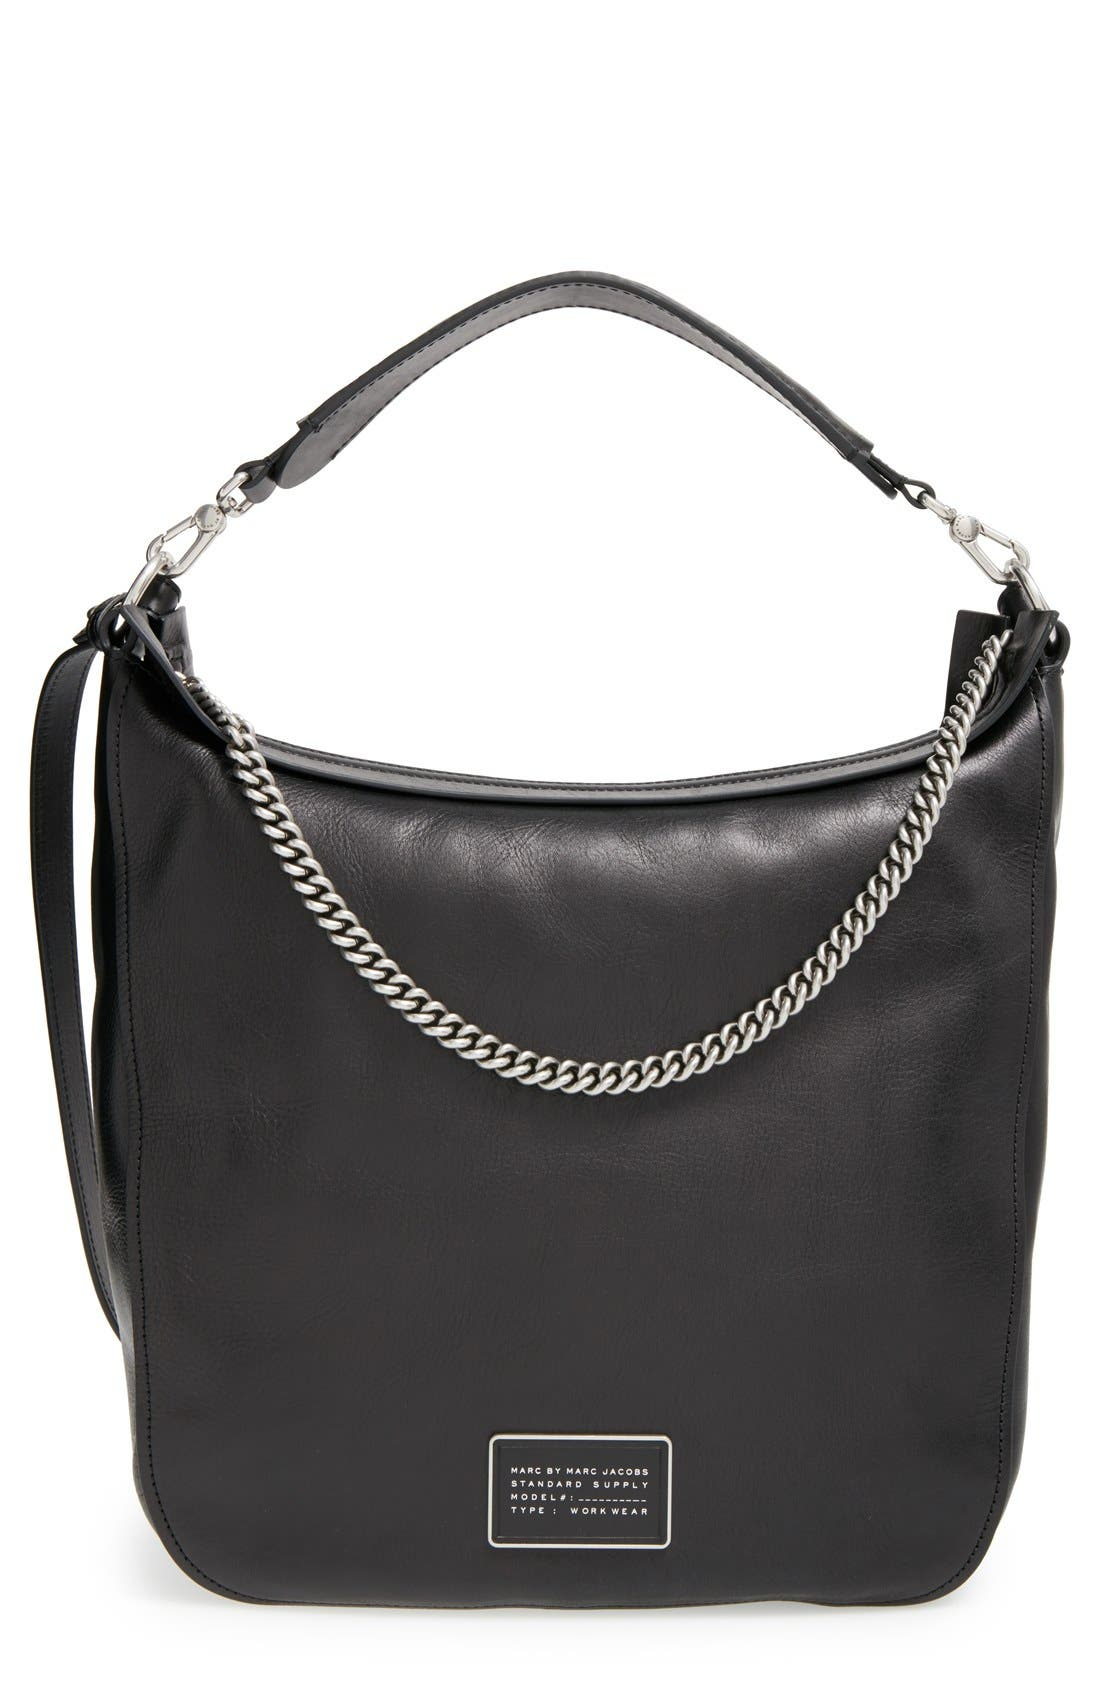 MARC BY MARC JACOBS 'Top of the Chain' Leather Hobo, Main, color, 001